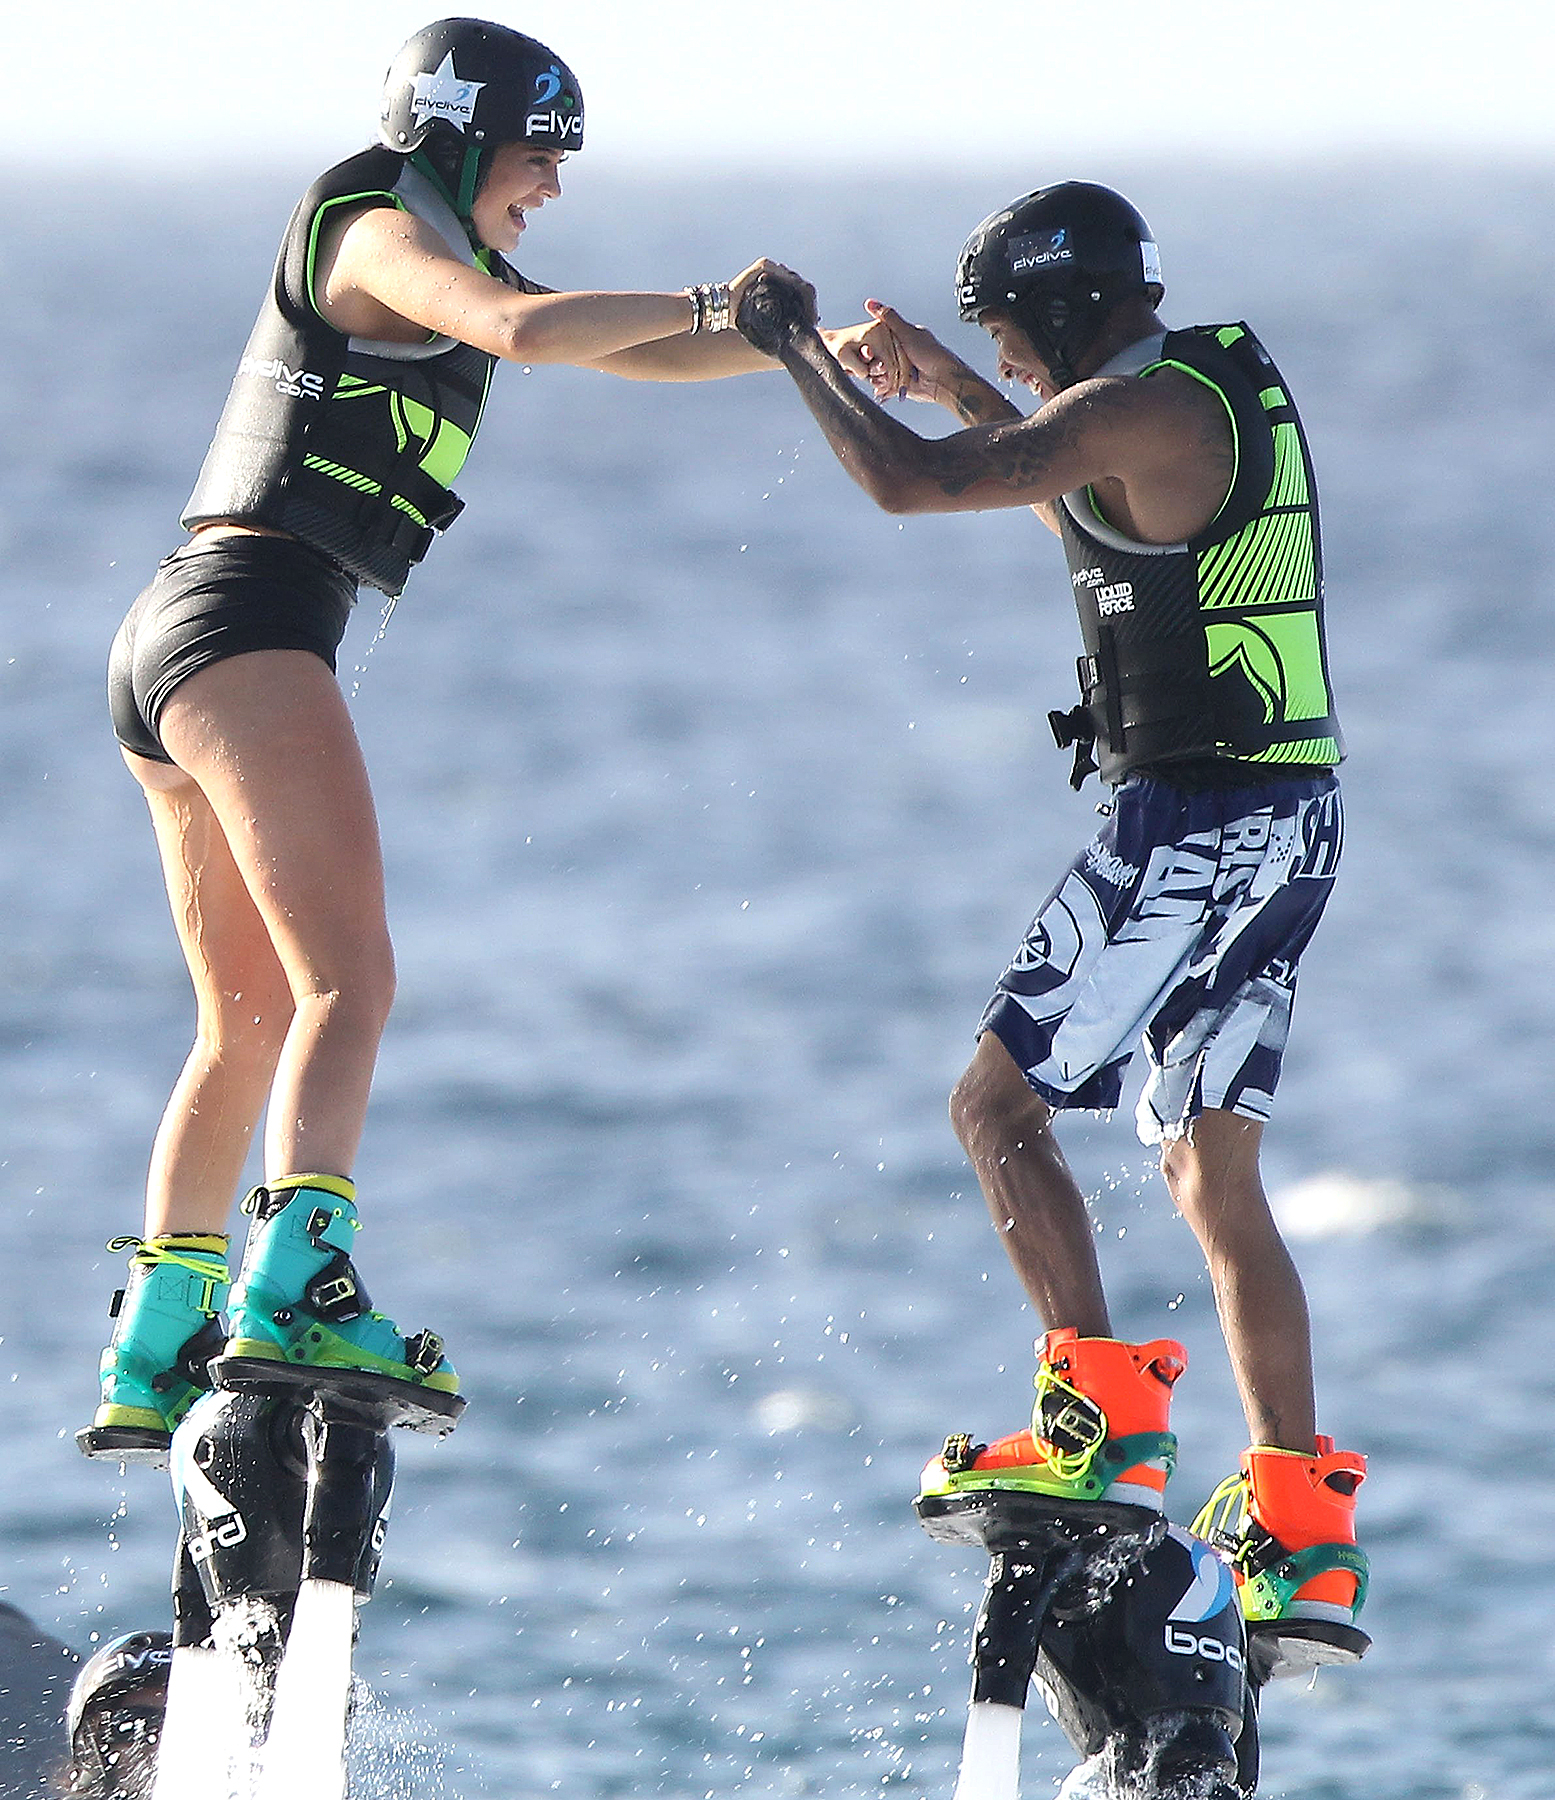 Kylie Jenner and Tyga in St Barts on August 19.